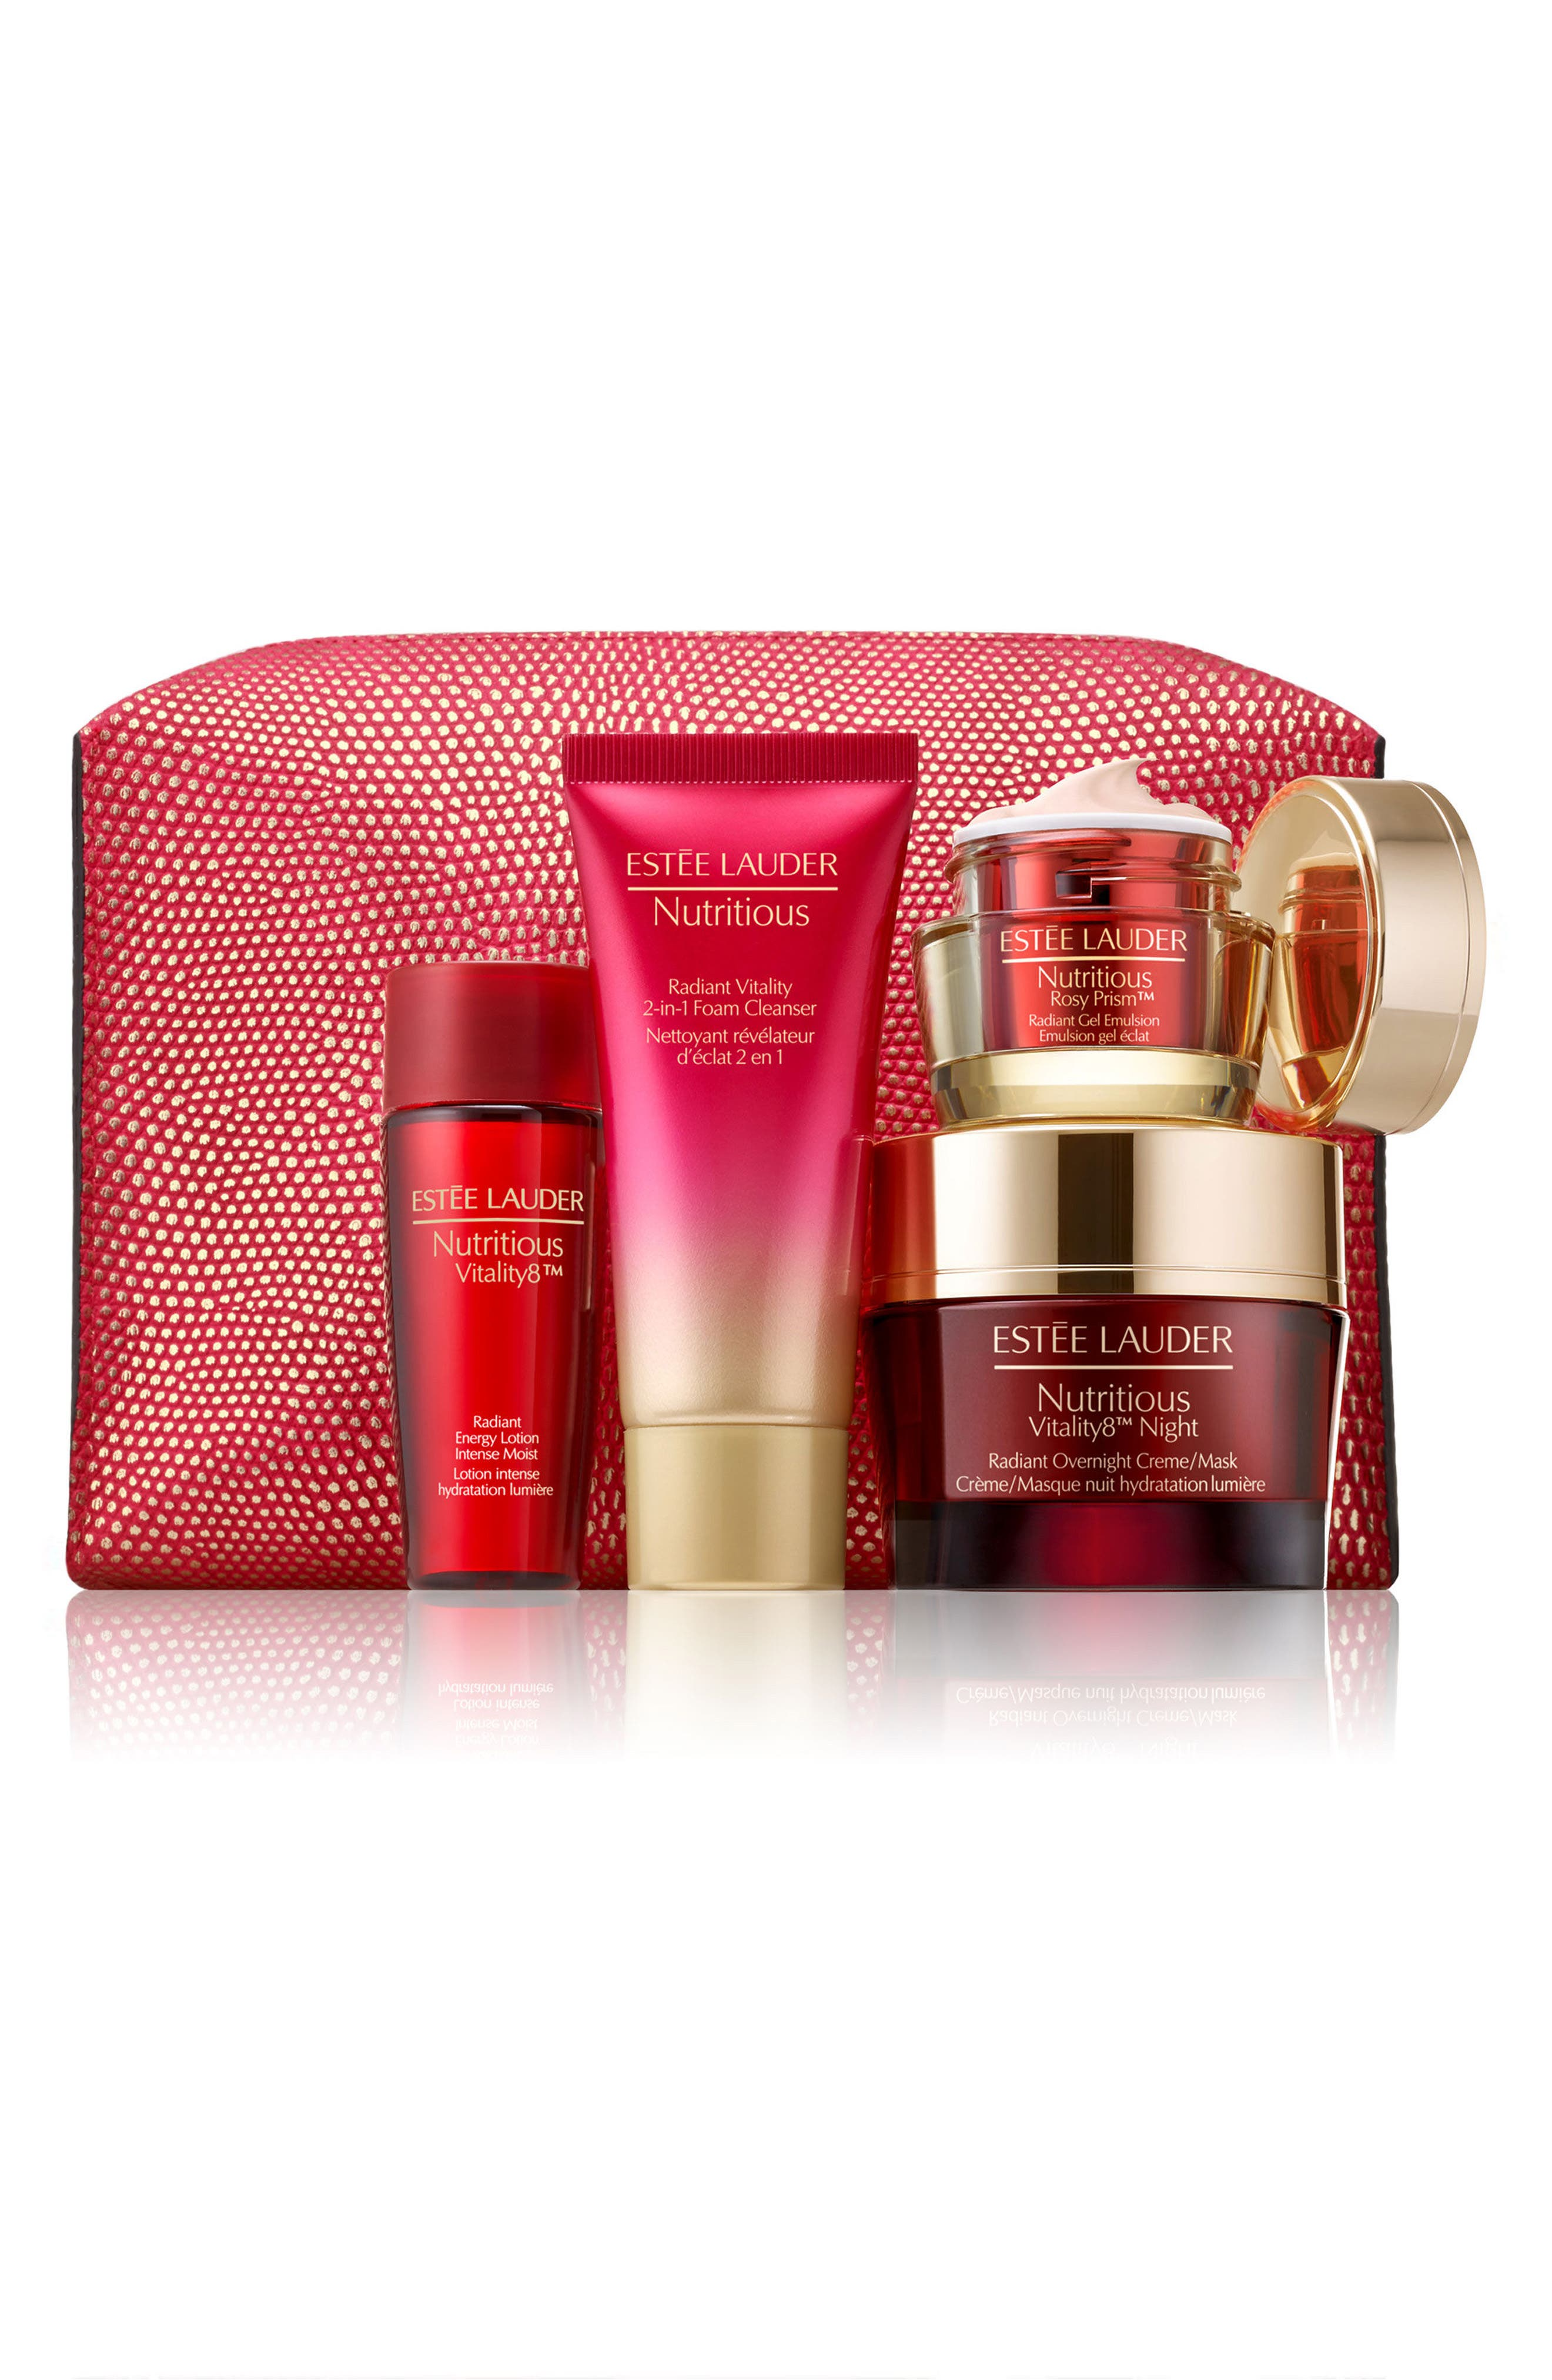 Estée Lauder Nutritious Night Detox & Glow Collection ($125 Value)